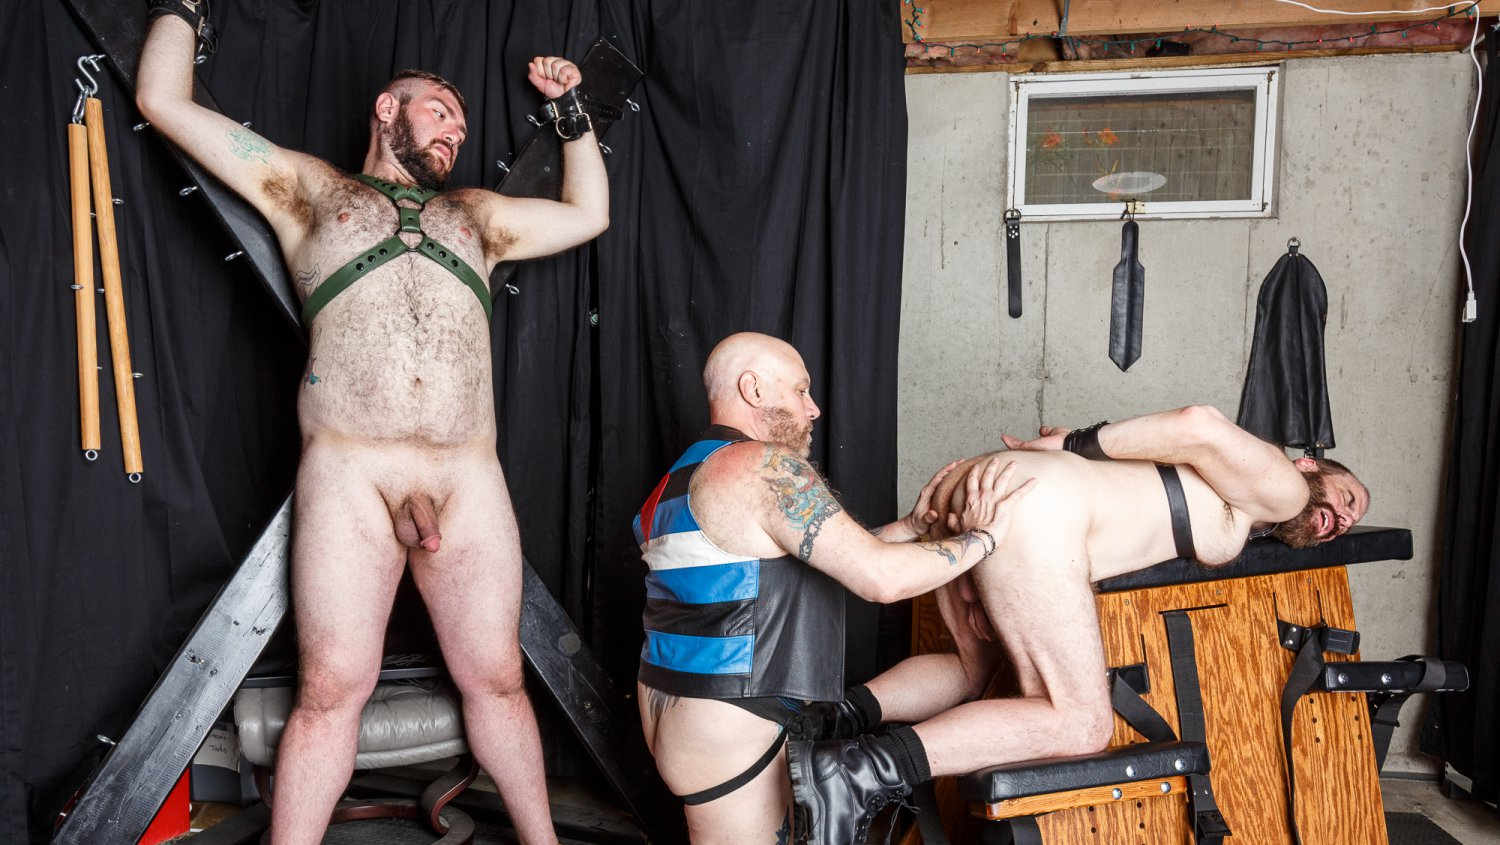 Hairy and Raw Gay Bear Sex Daddy Cub, Steve Sommers and Daddy Lucas Part 2